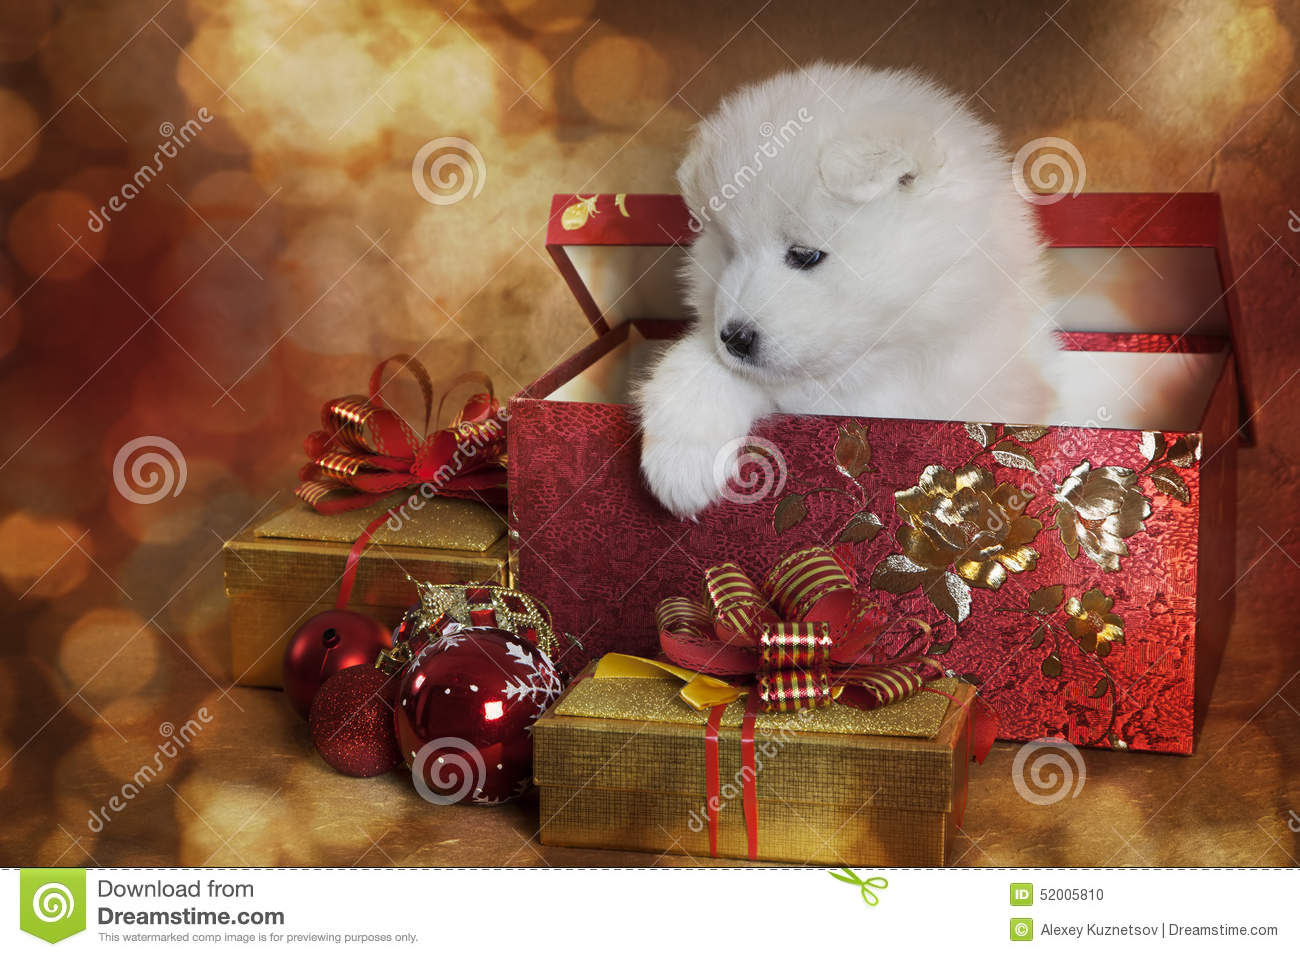 Puppies for christmas gifts